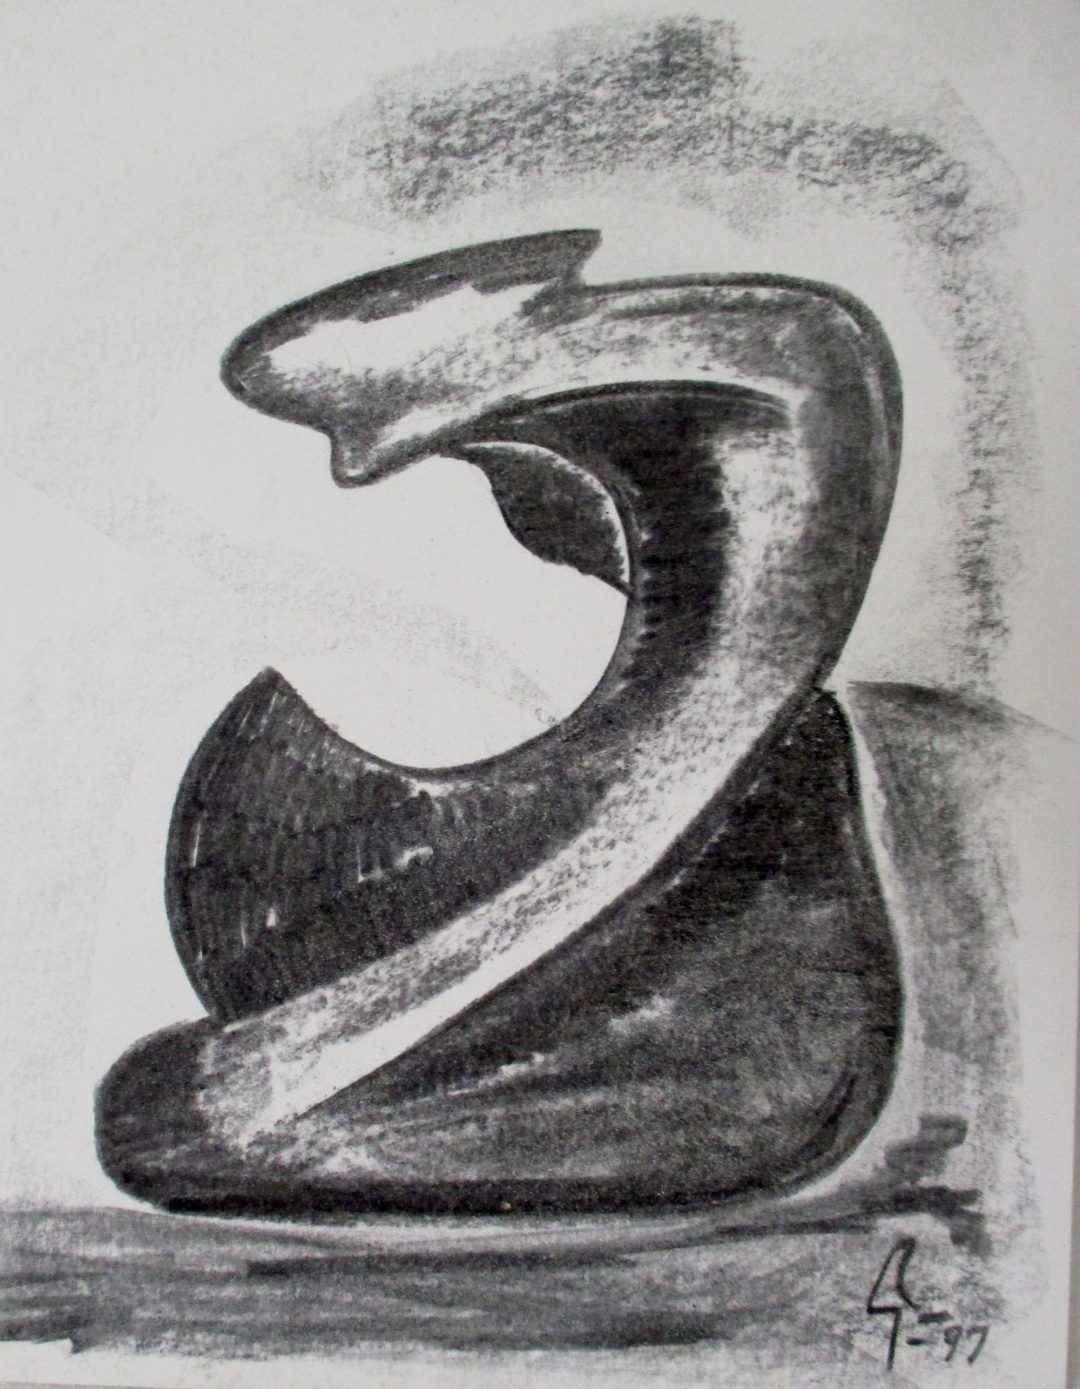 Carboncino1